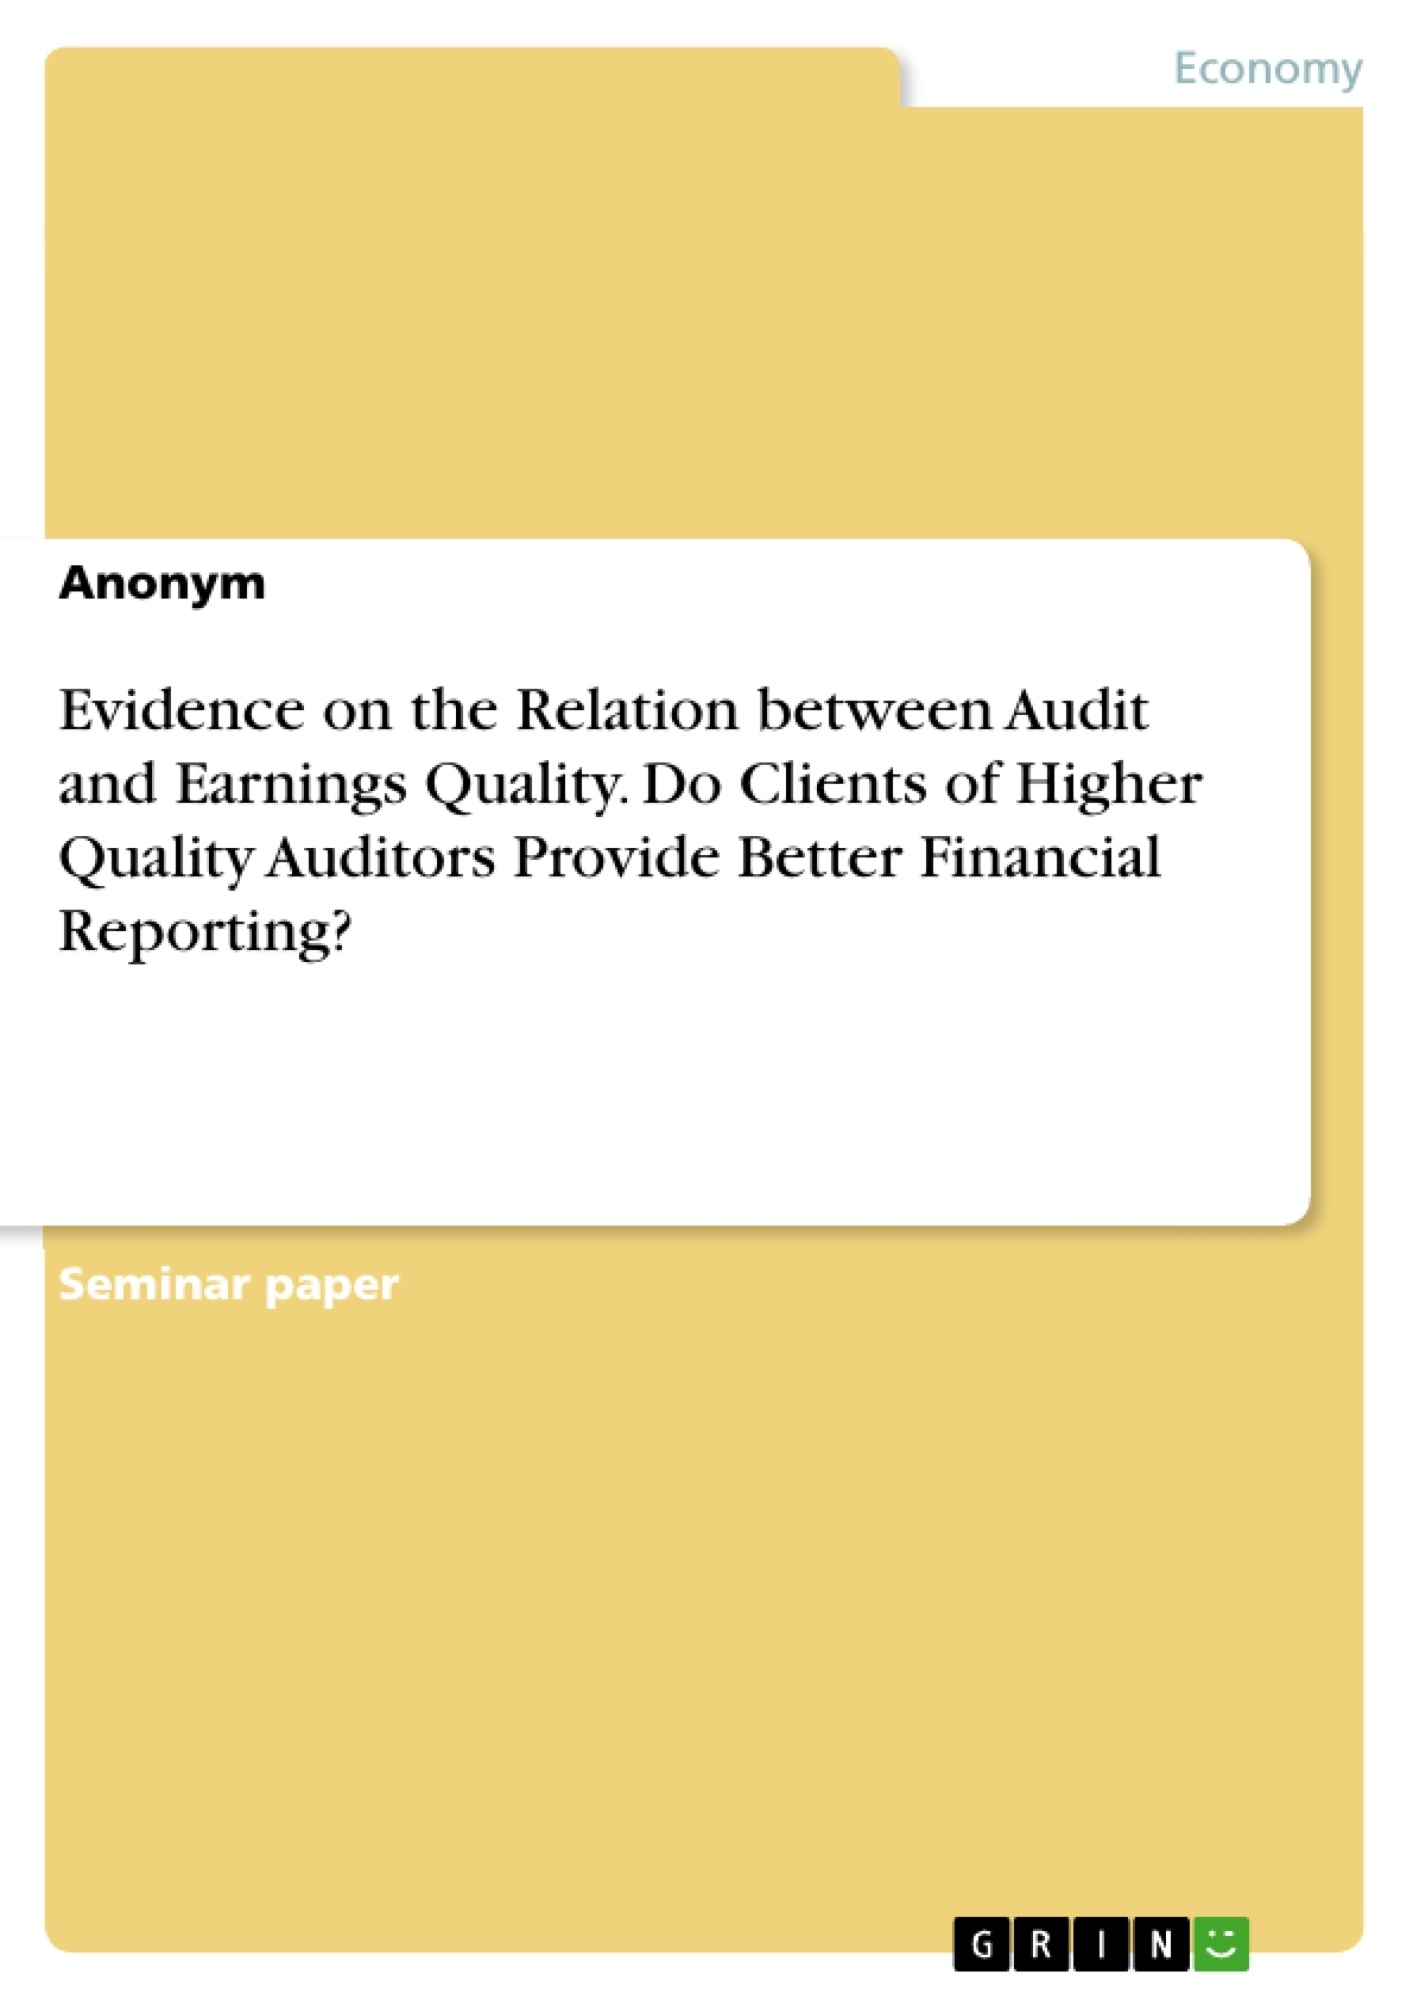 Title: Evidence on the Relation between Audit and Earnings Quality. Do Clients of Higher Quality Auditors Provide Better Financial Reporting?